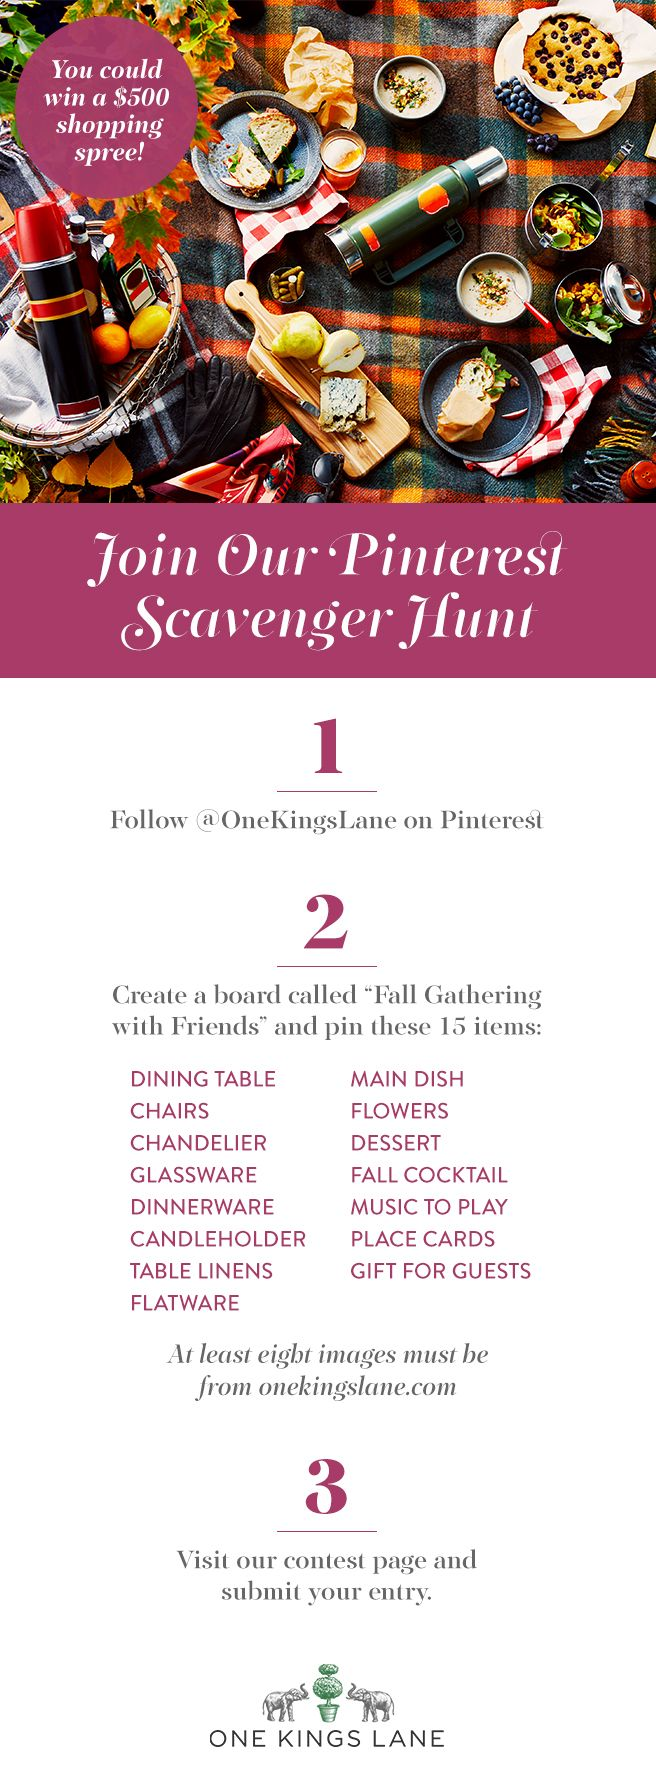 Best 25 one kings lane ideas on pinterest kings lane one kings join our pinterest scavenger hunt for a chance to win a 500 shopping spree on one one kings lanebusiness arubaitofo Images